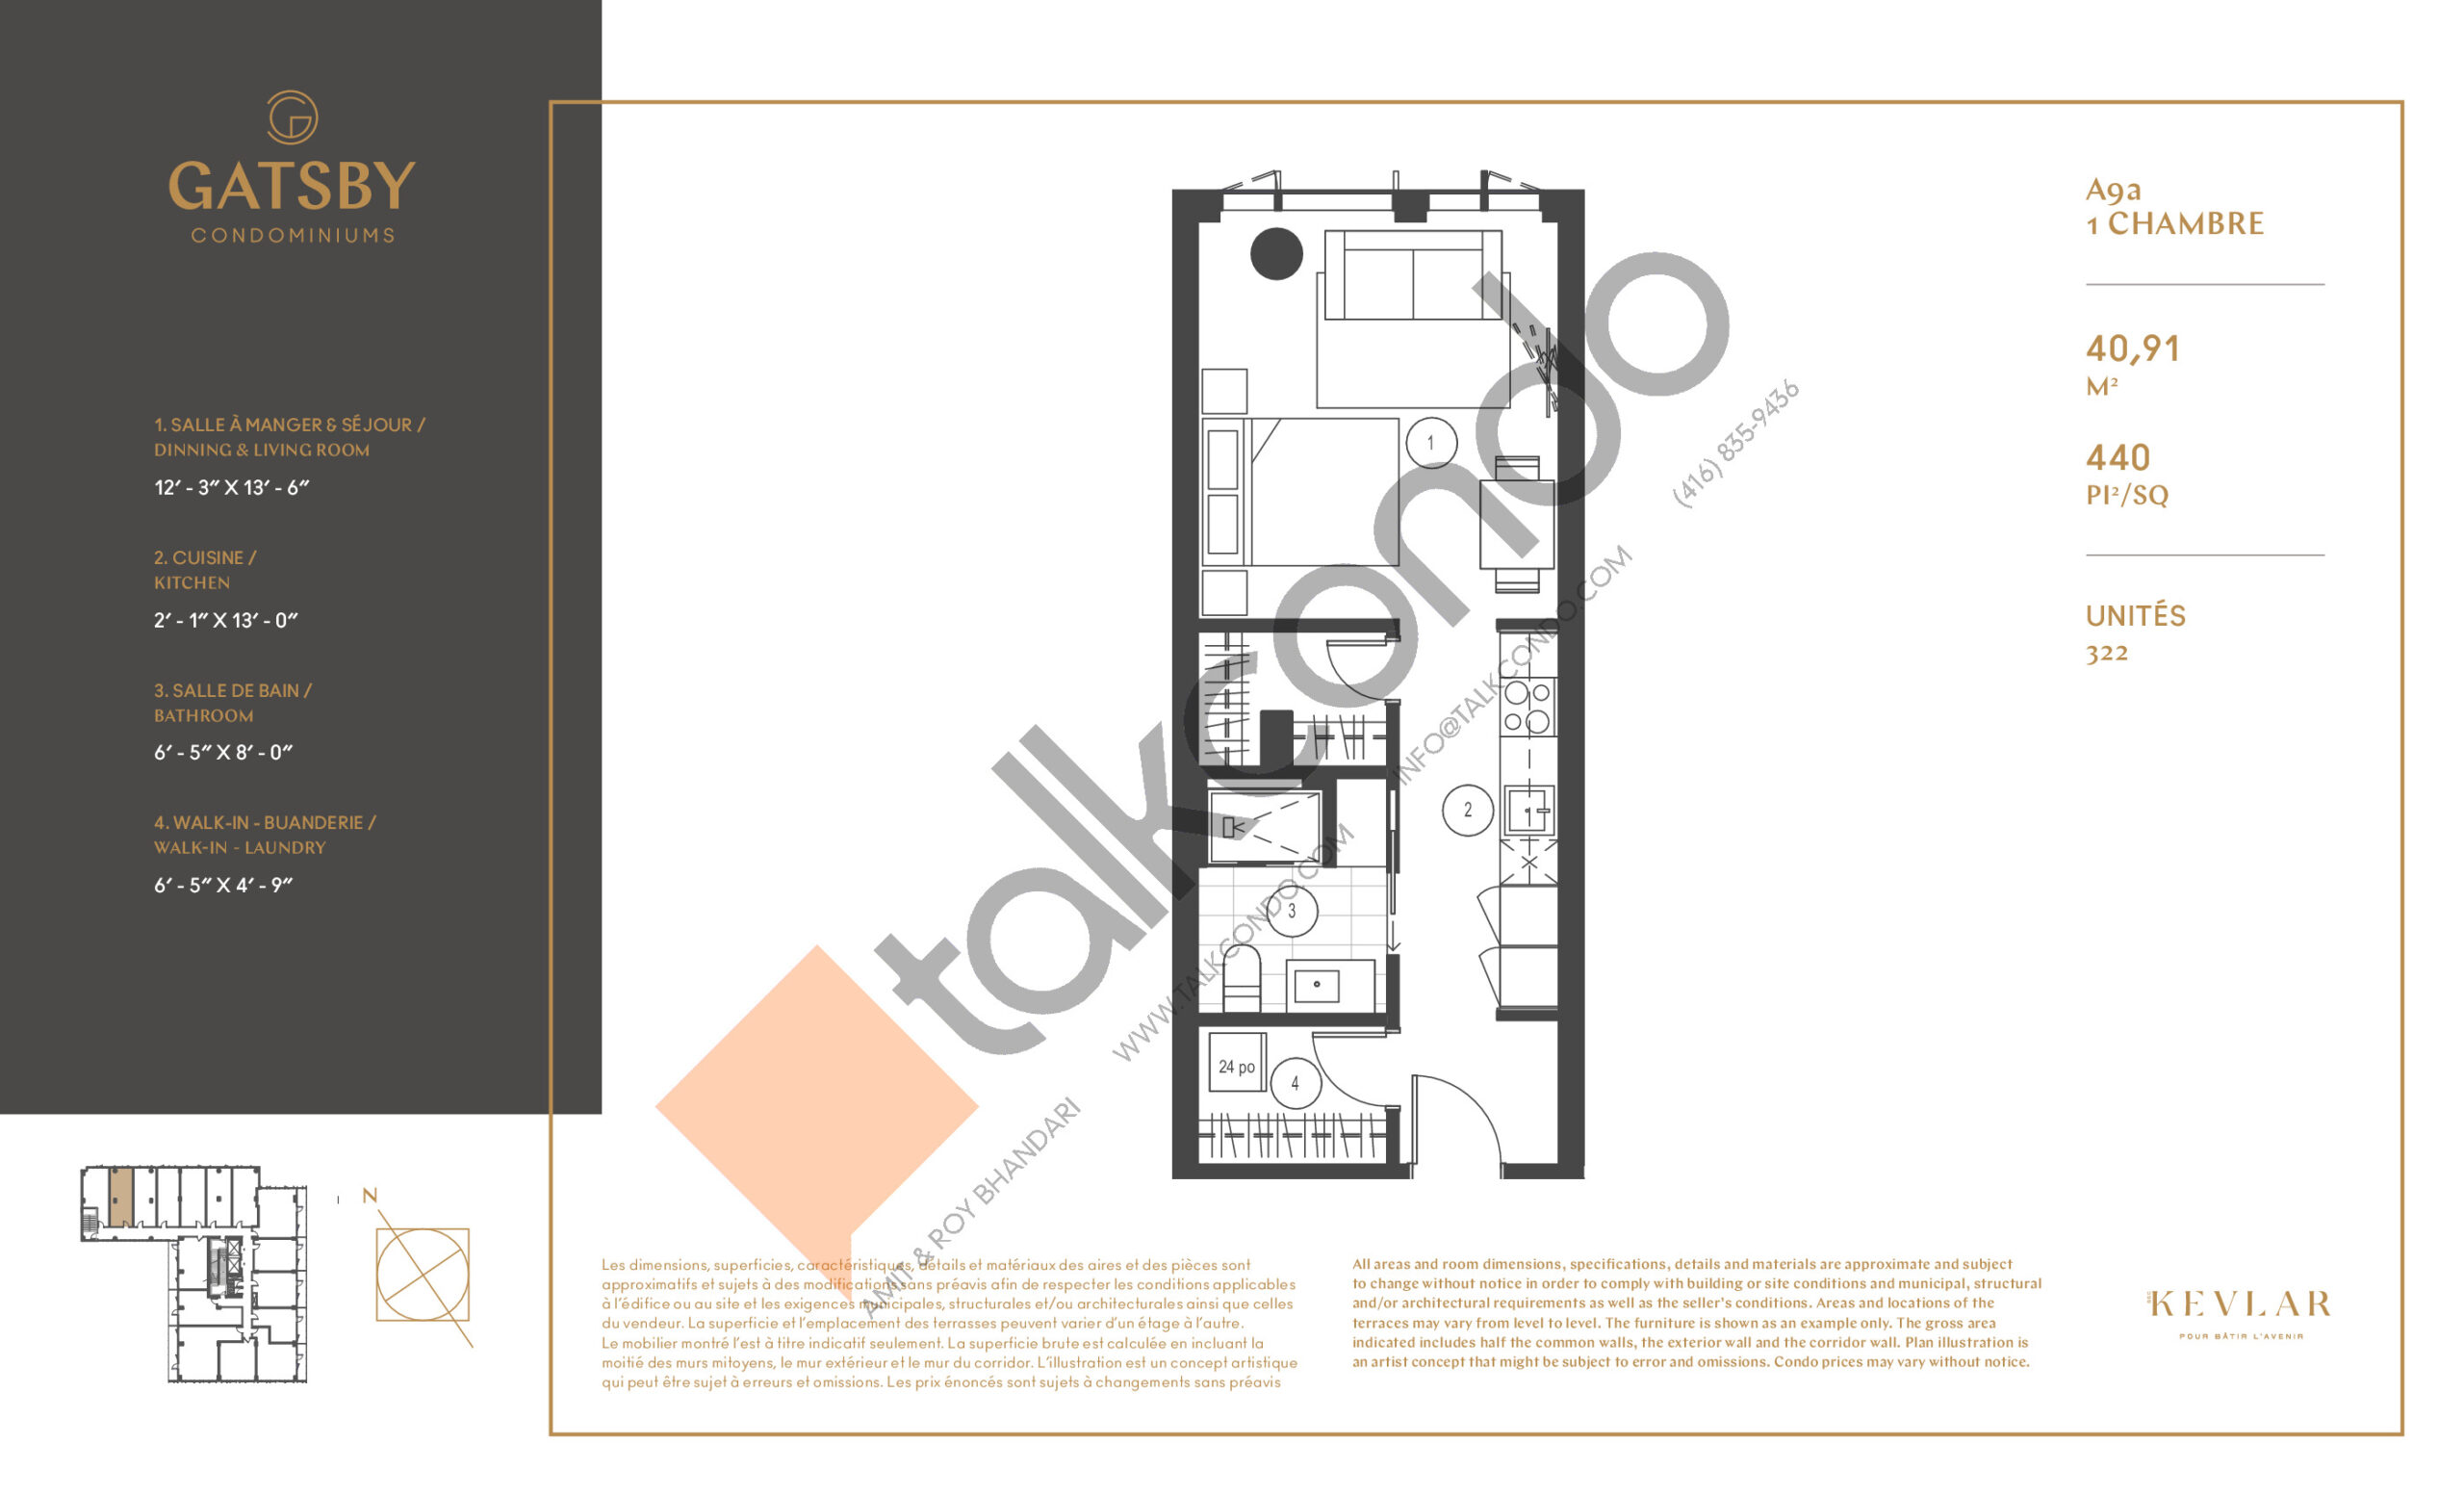 A9a Floor Plan at Gatsby Condos - 440 sq.ft